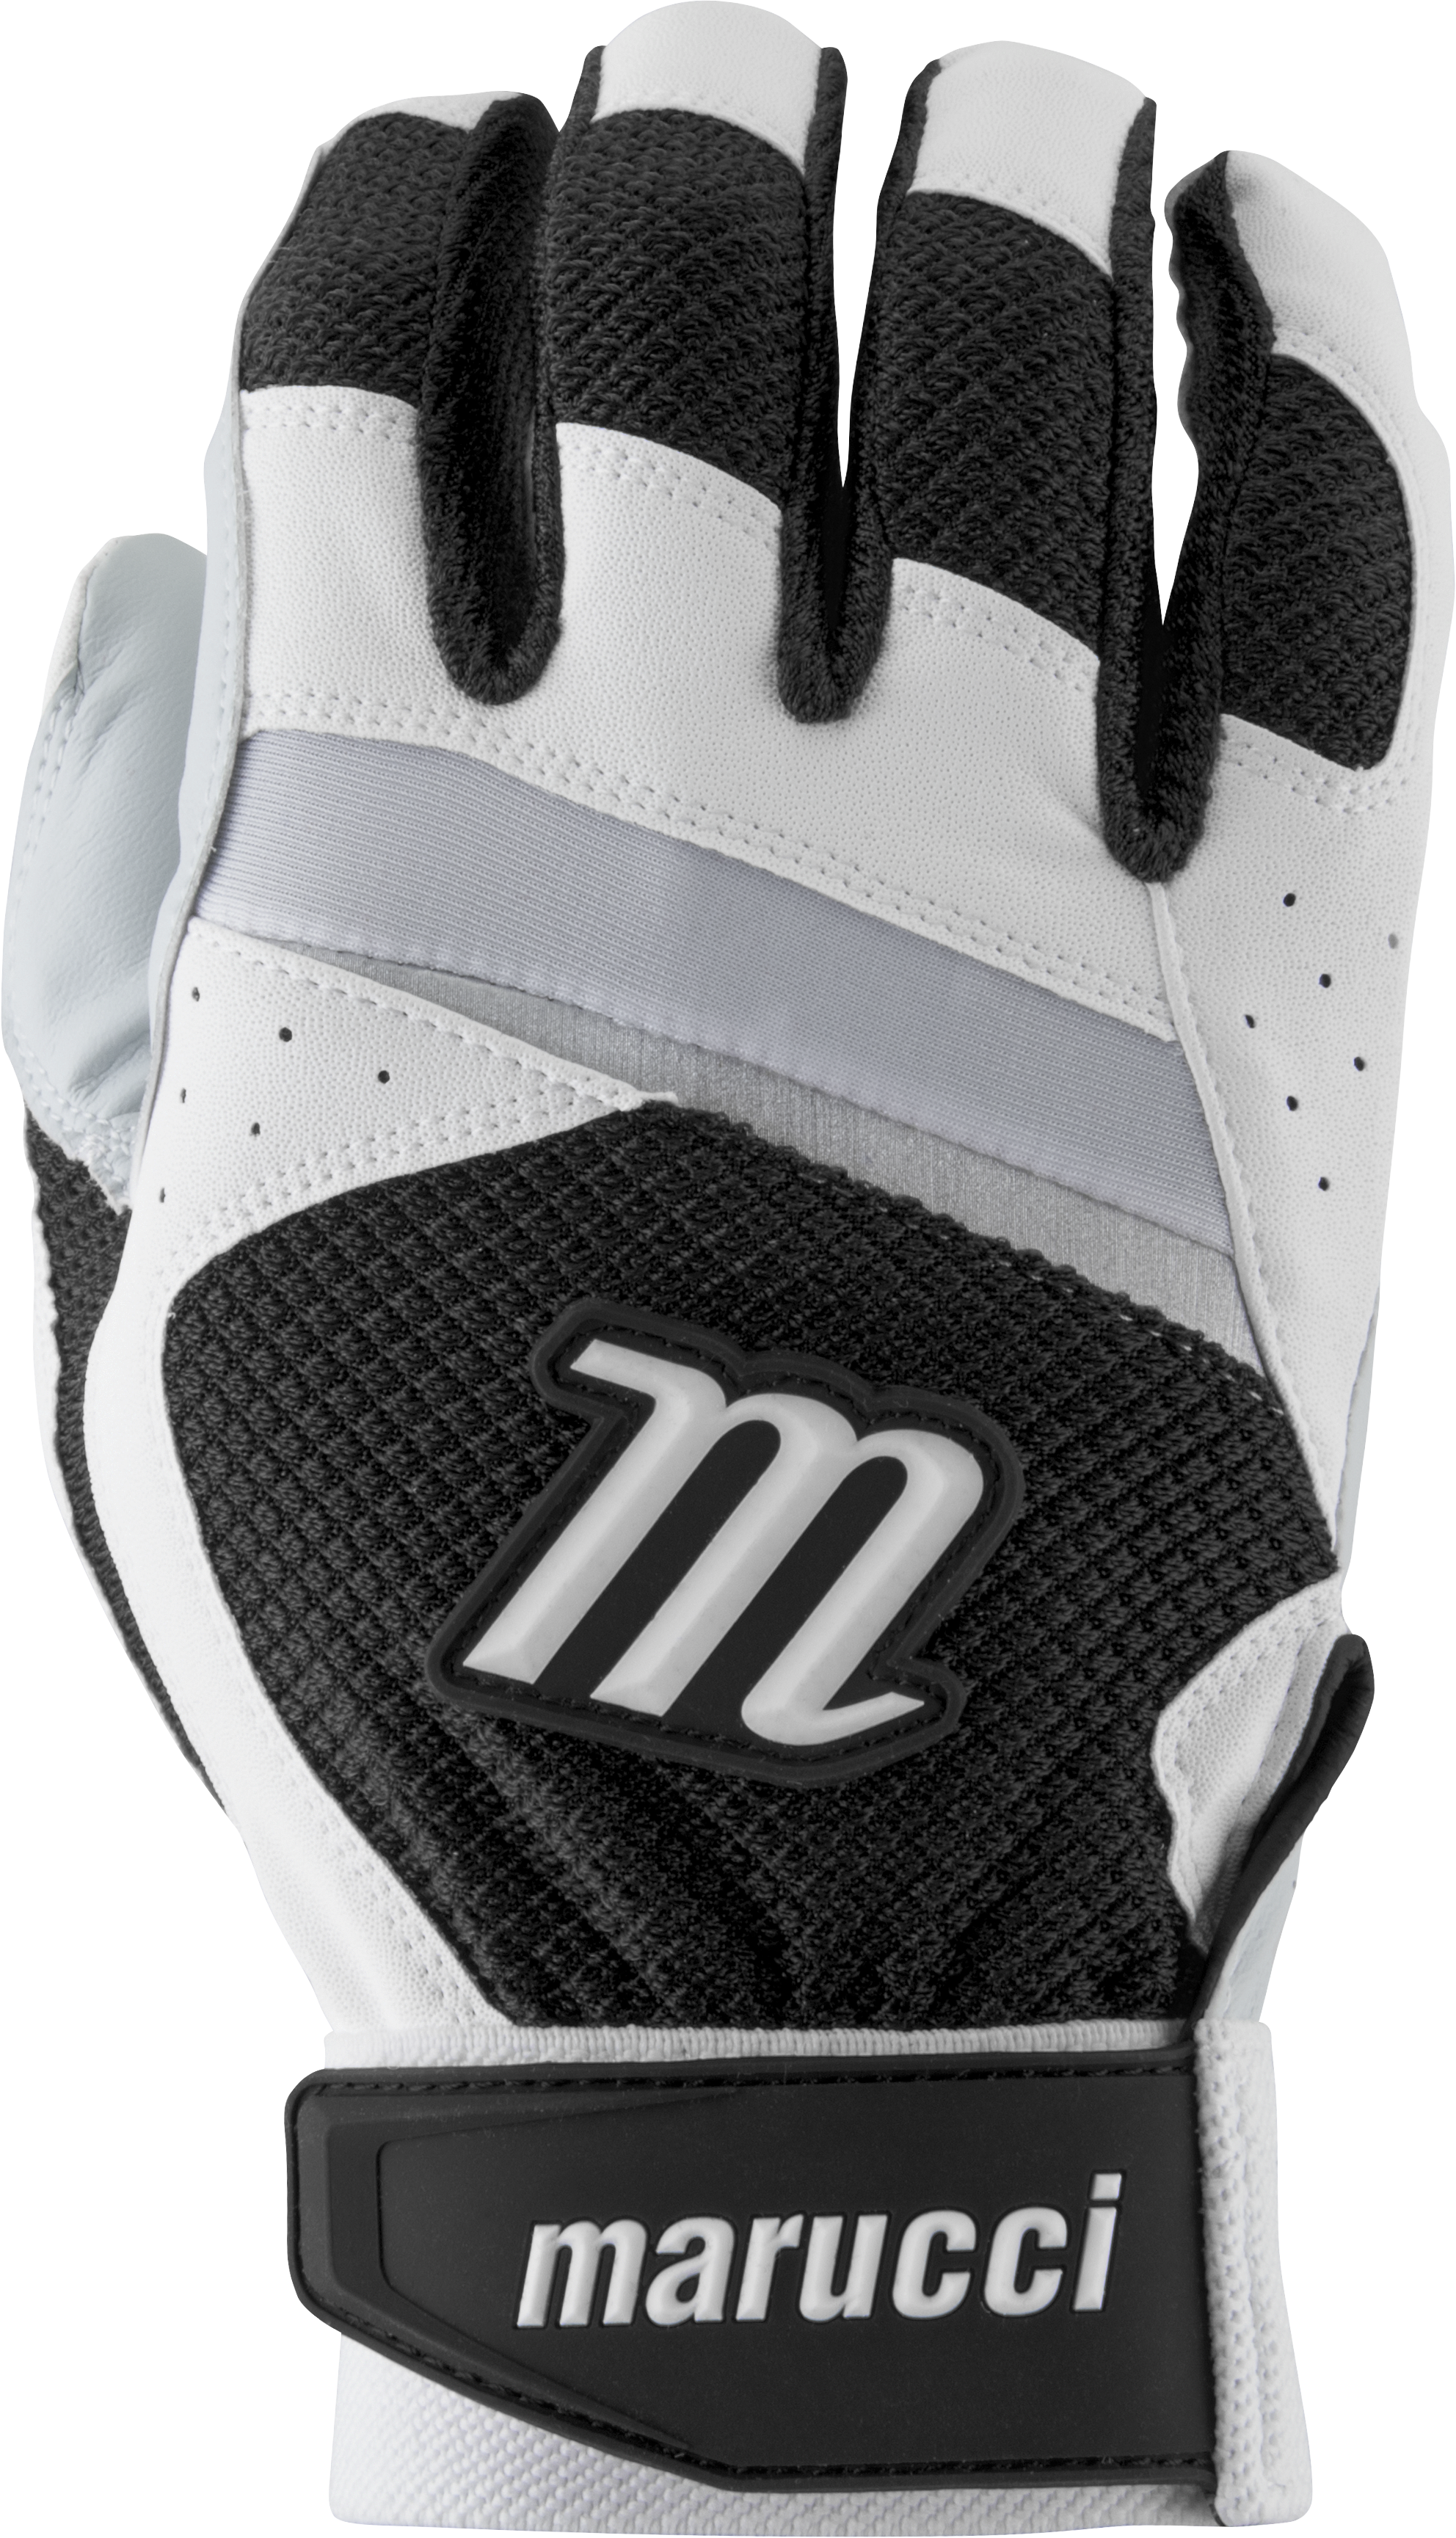 marucci-code-adult-batting-gloves-1-pair-white-black-adult-small MBGCD-WBK-AS  849817095980 2019 Model MBGCD-W/BK Consistency And Craftsmanship Commitment To Quality And Understanding